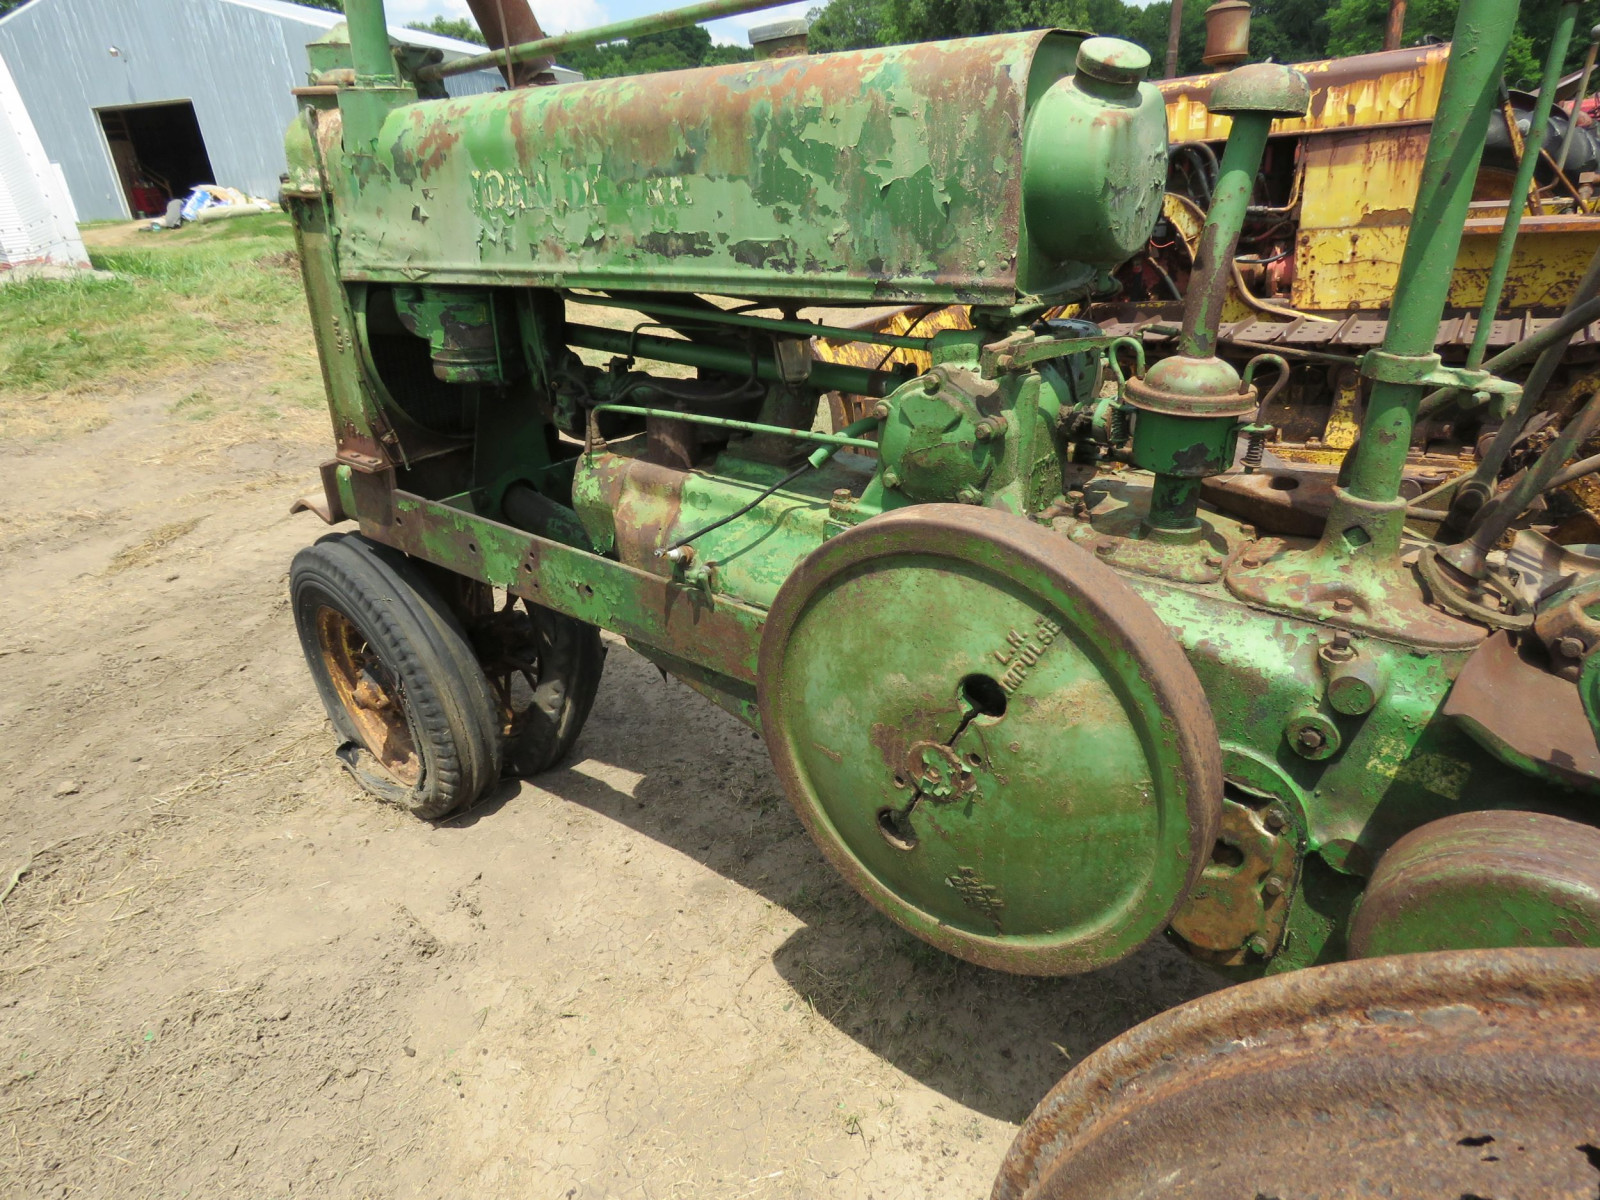 1936 John Deere Unstyled A Tractor - Image 5